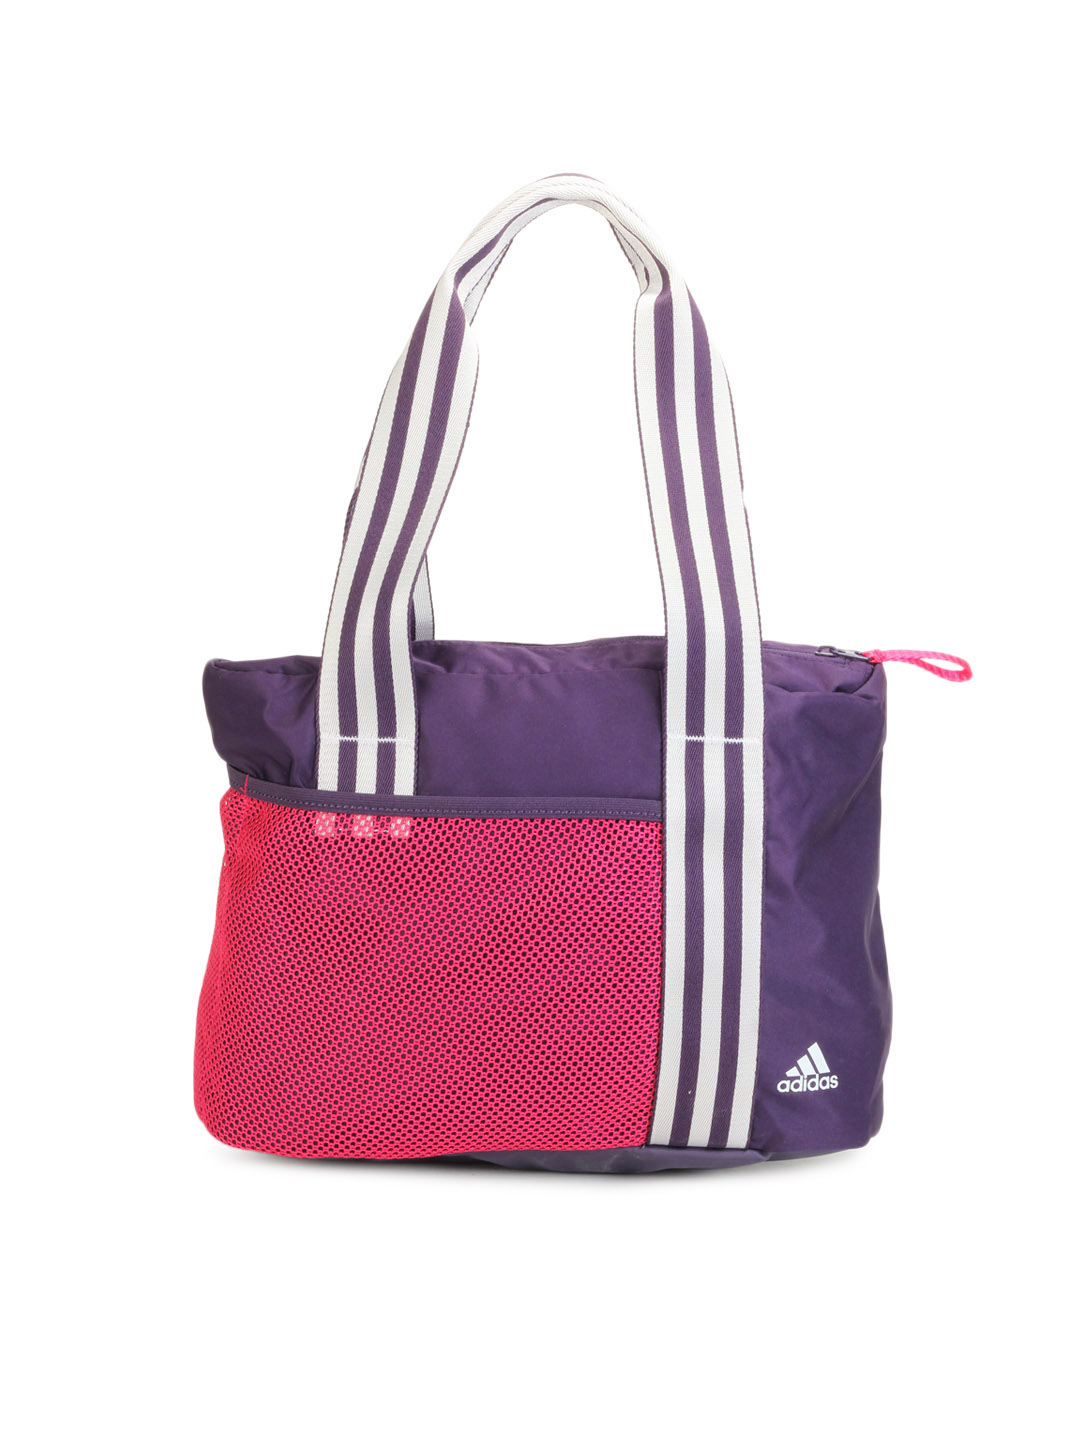 Adidas Women Purple Bag